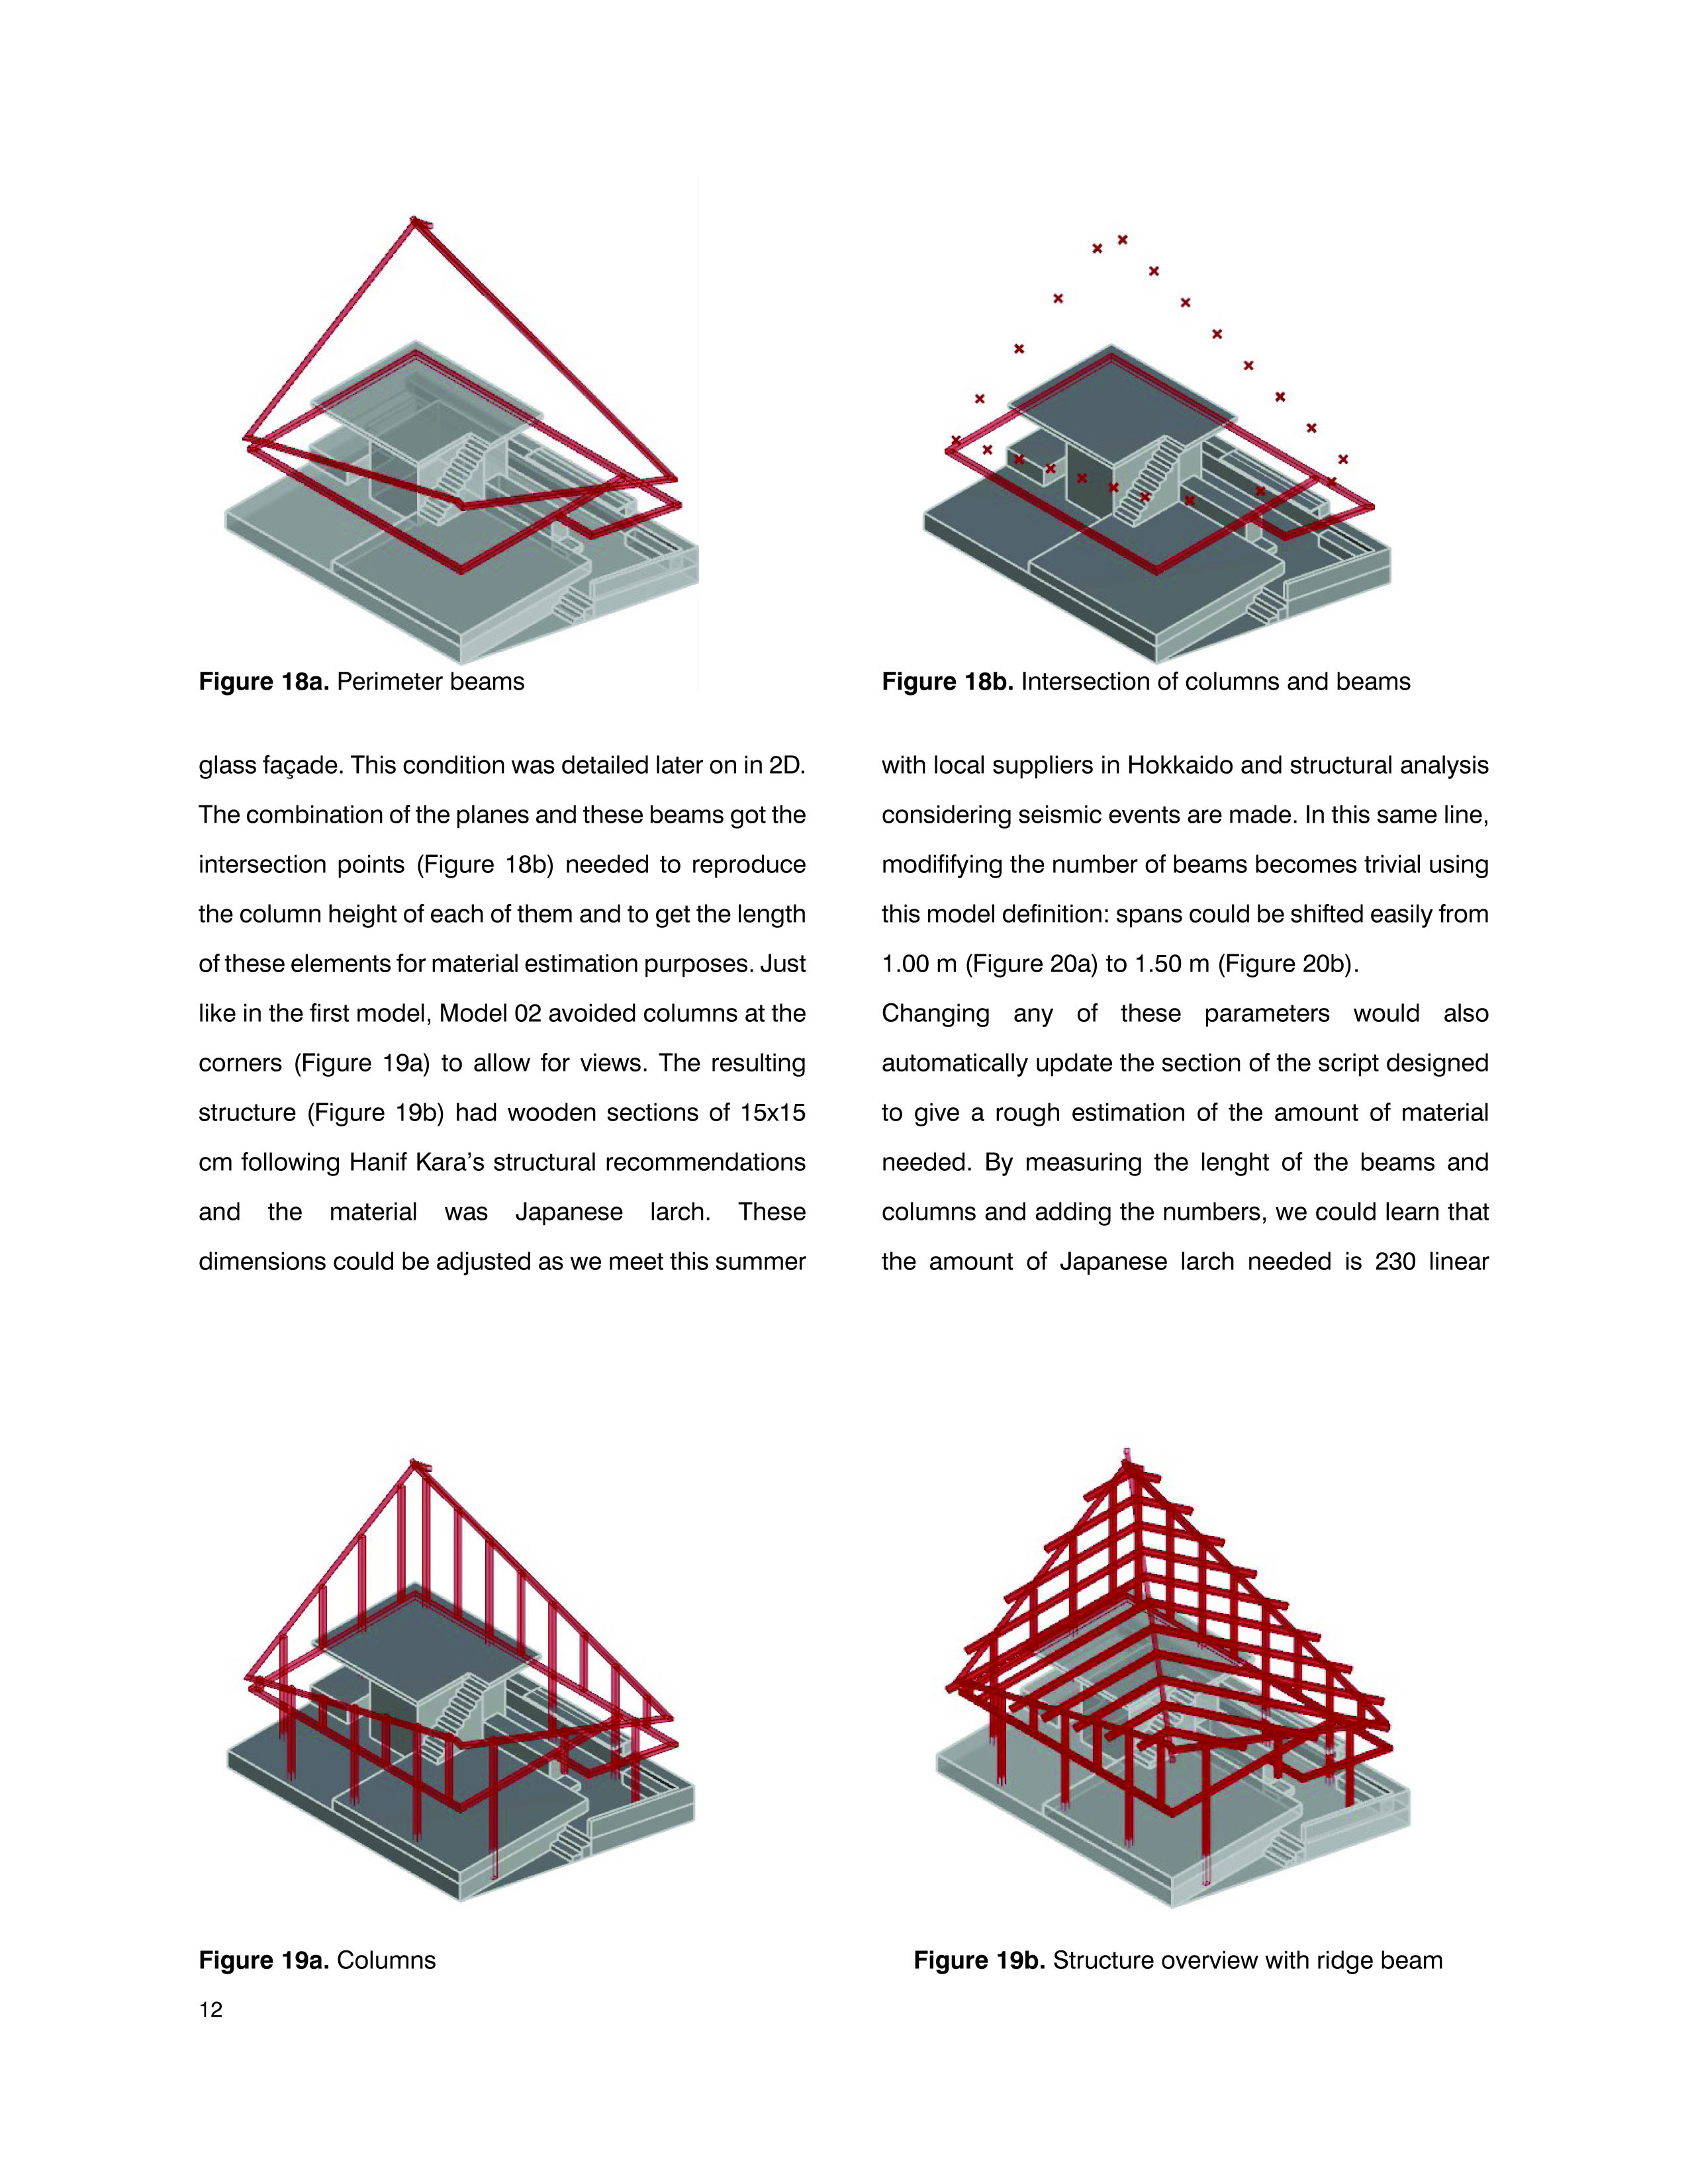 Applications of parametric design tools in Horizon House_Ana Garcia Puyol-Page12